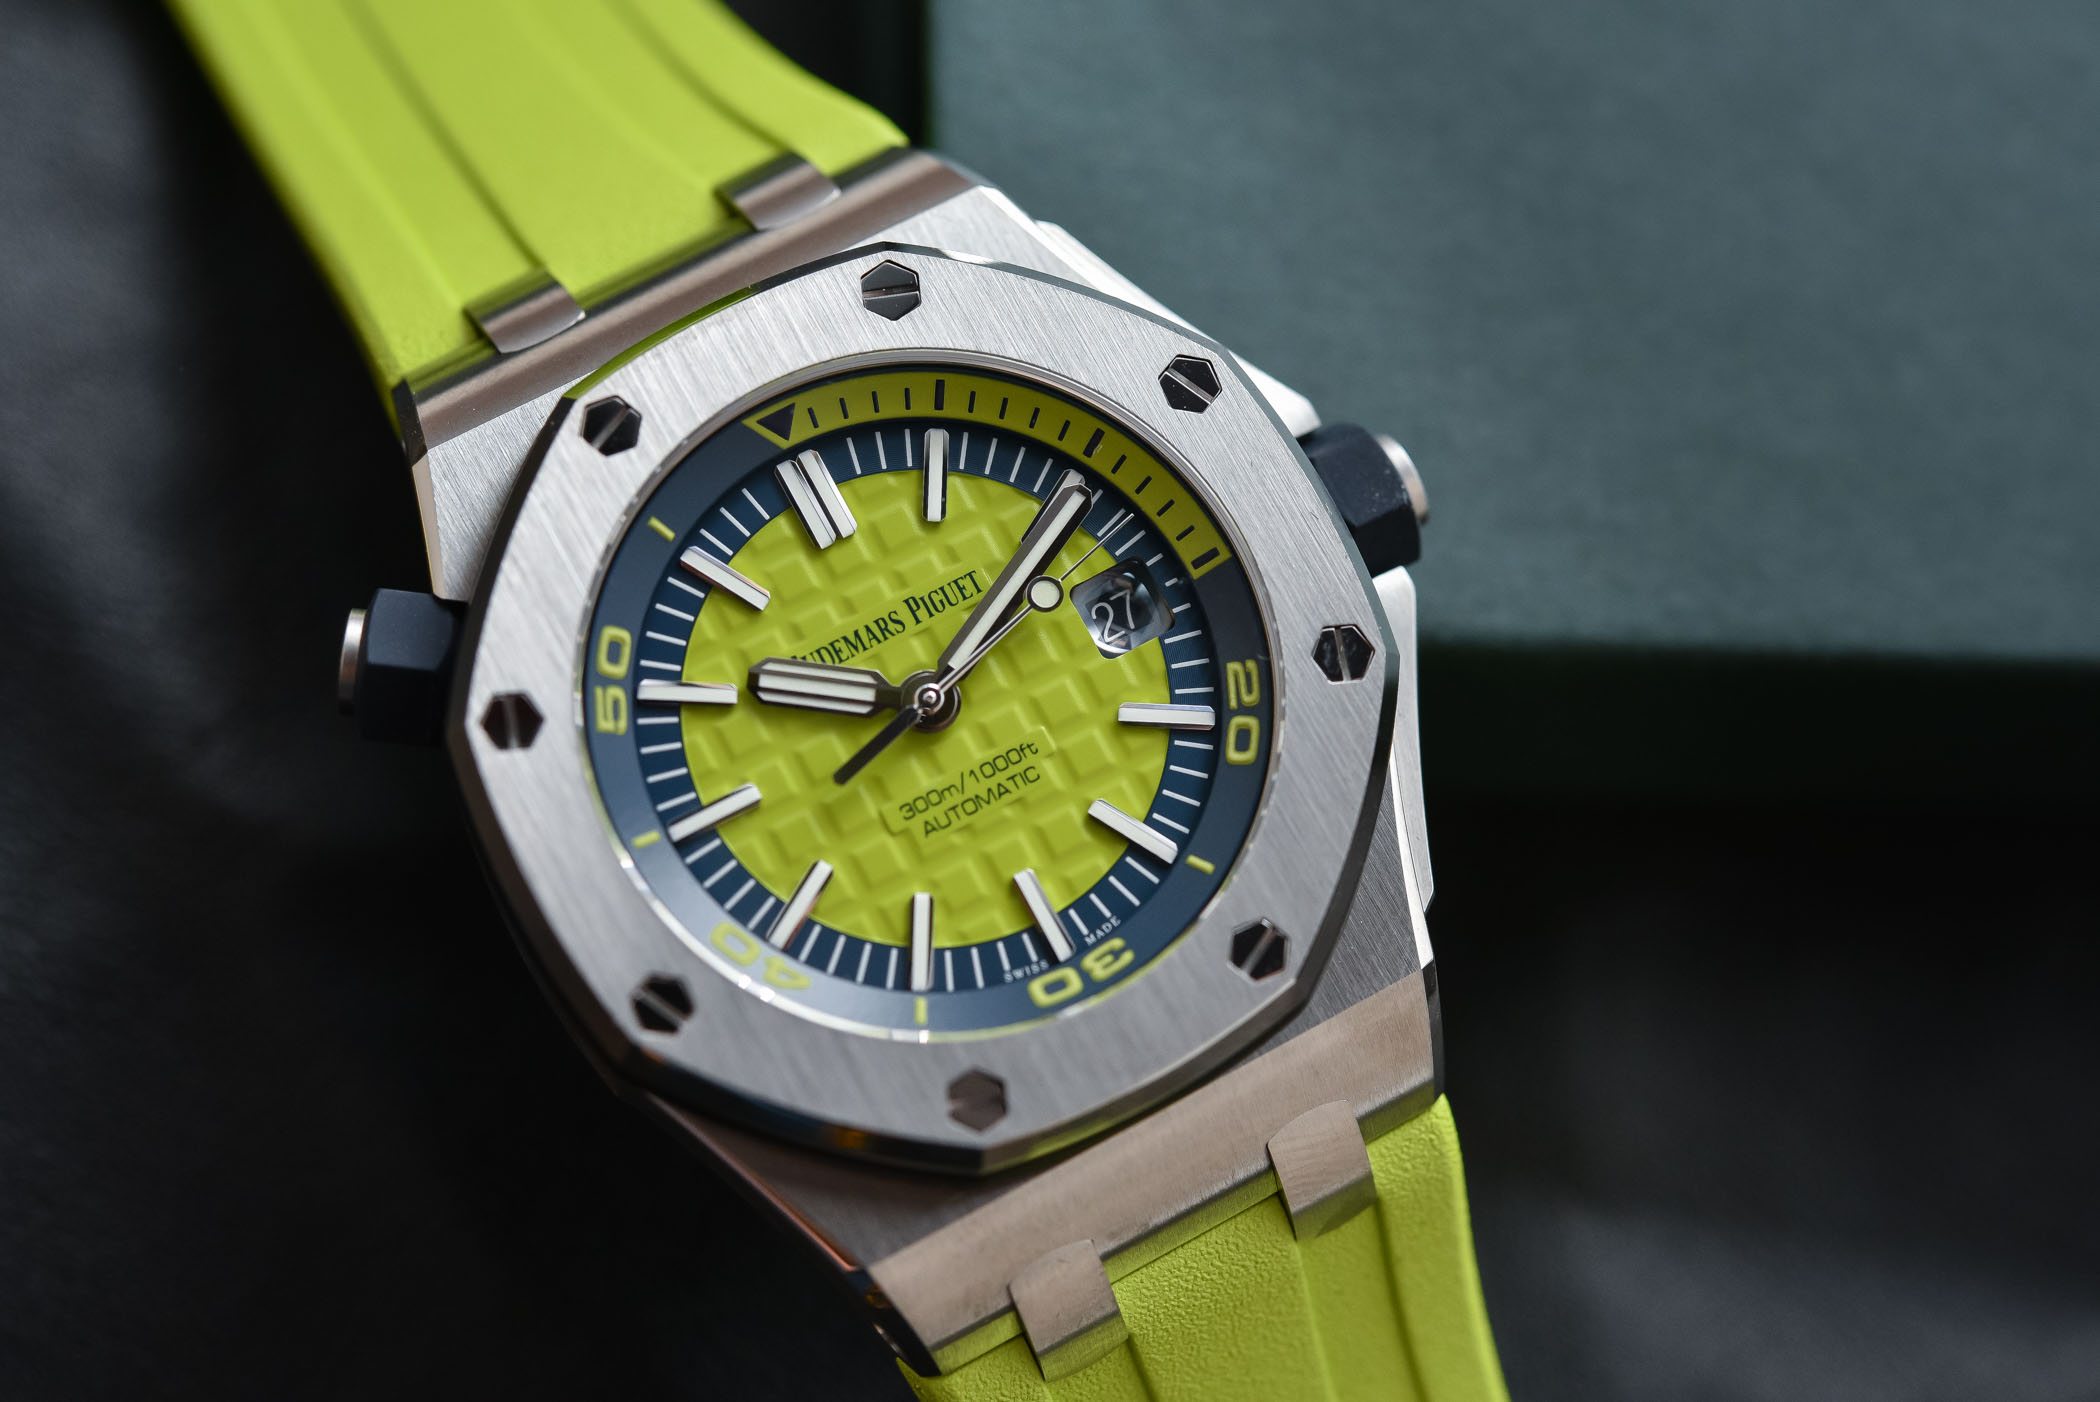 Audemars Piguet Royal Oak Offshore Diver colorful 2017 Collection